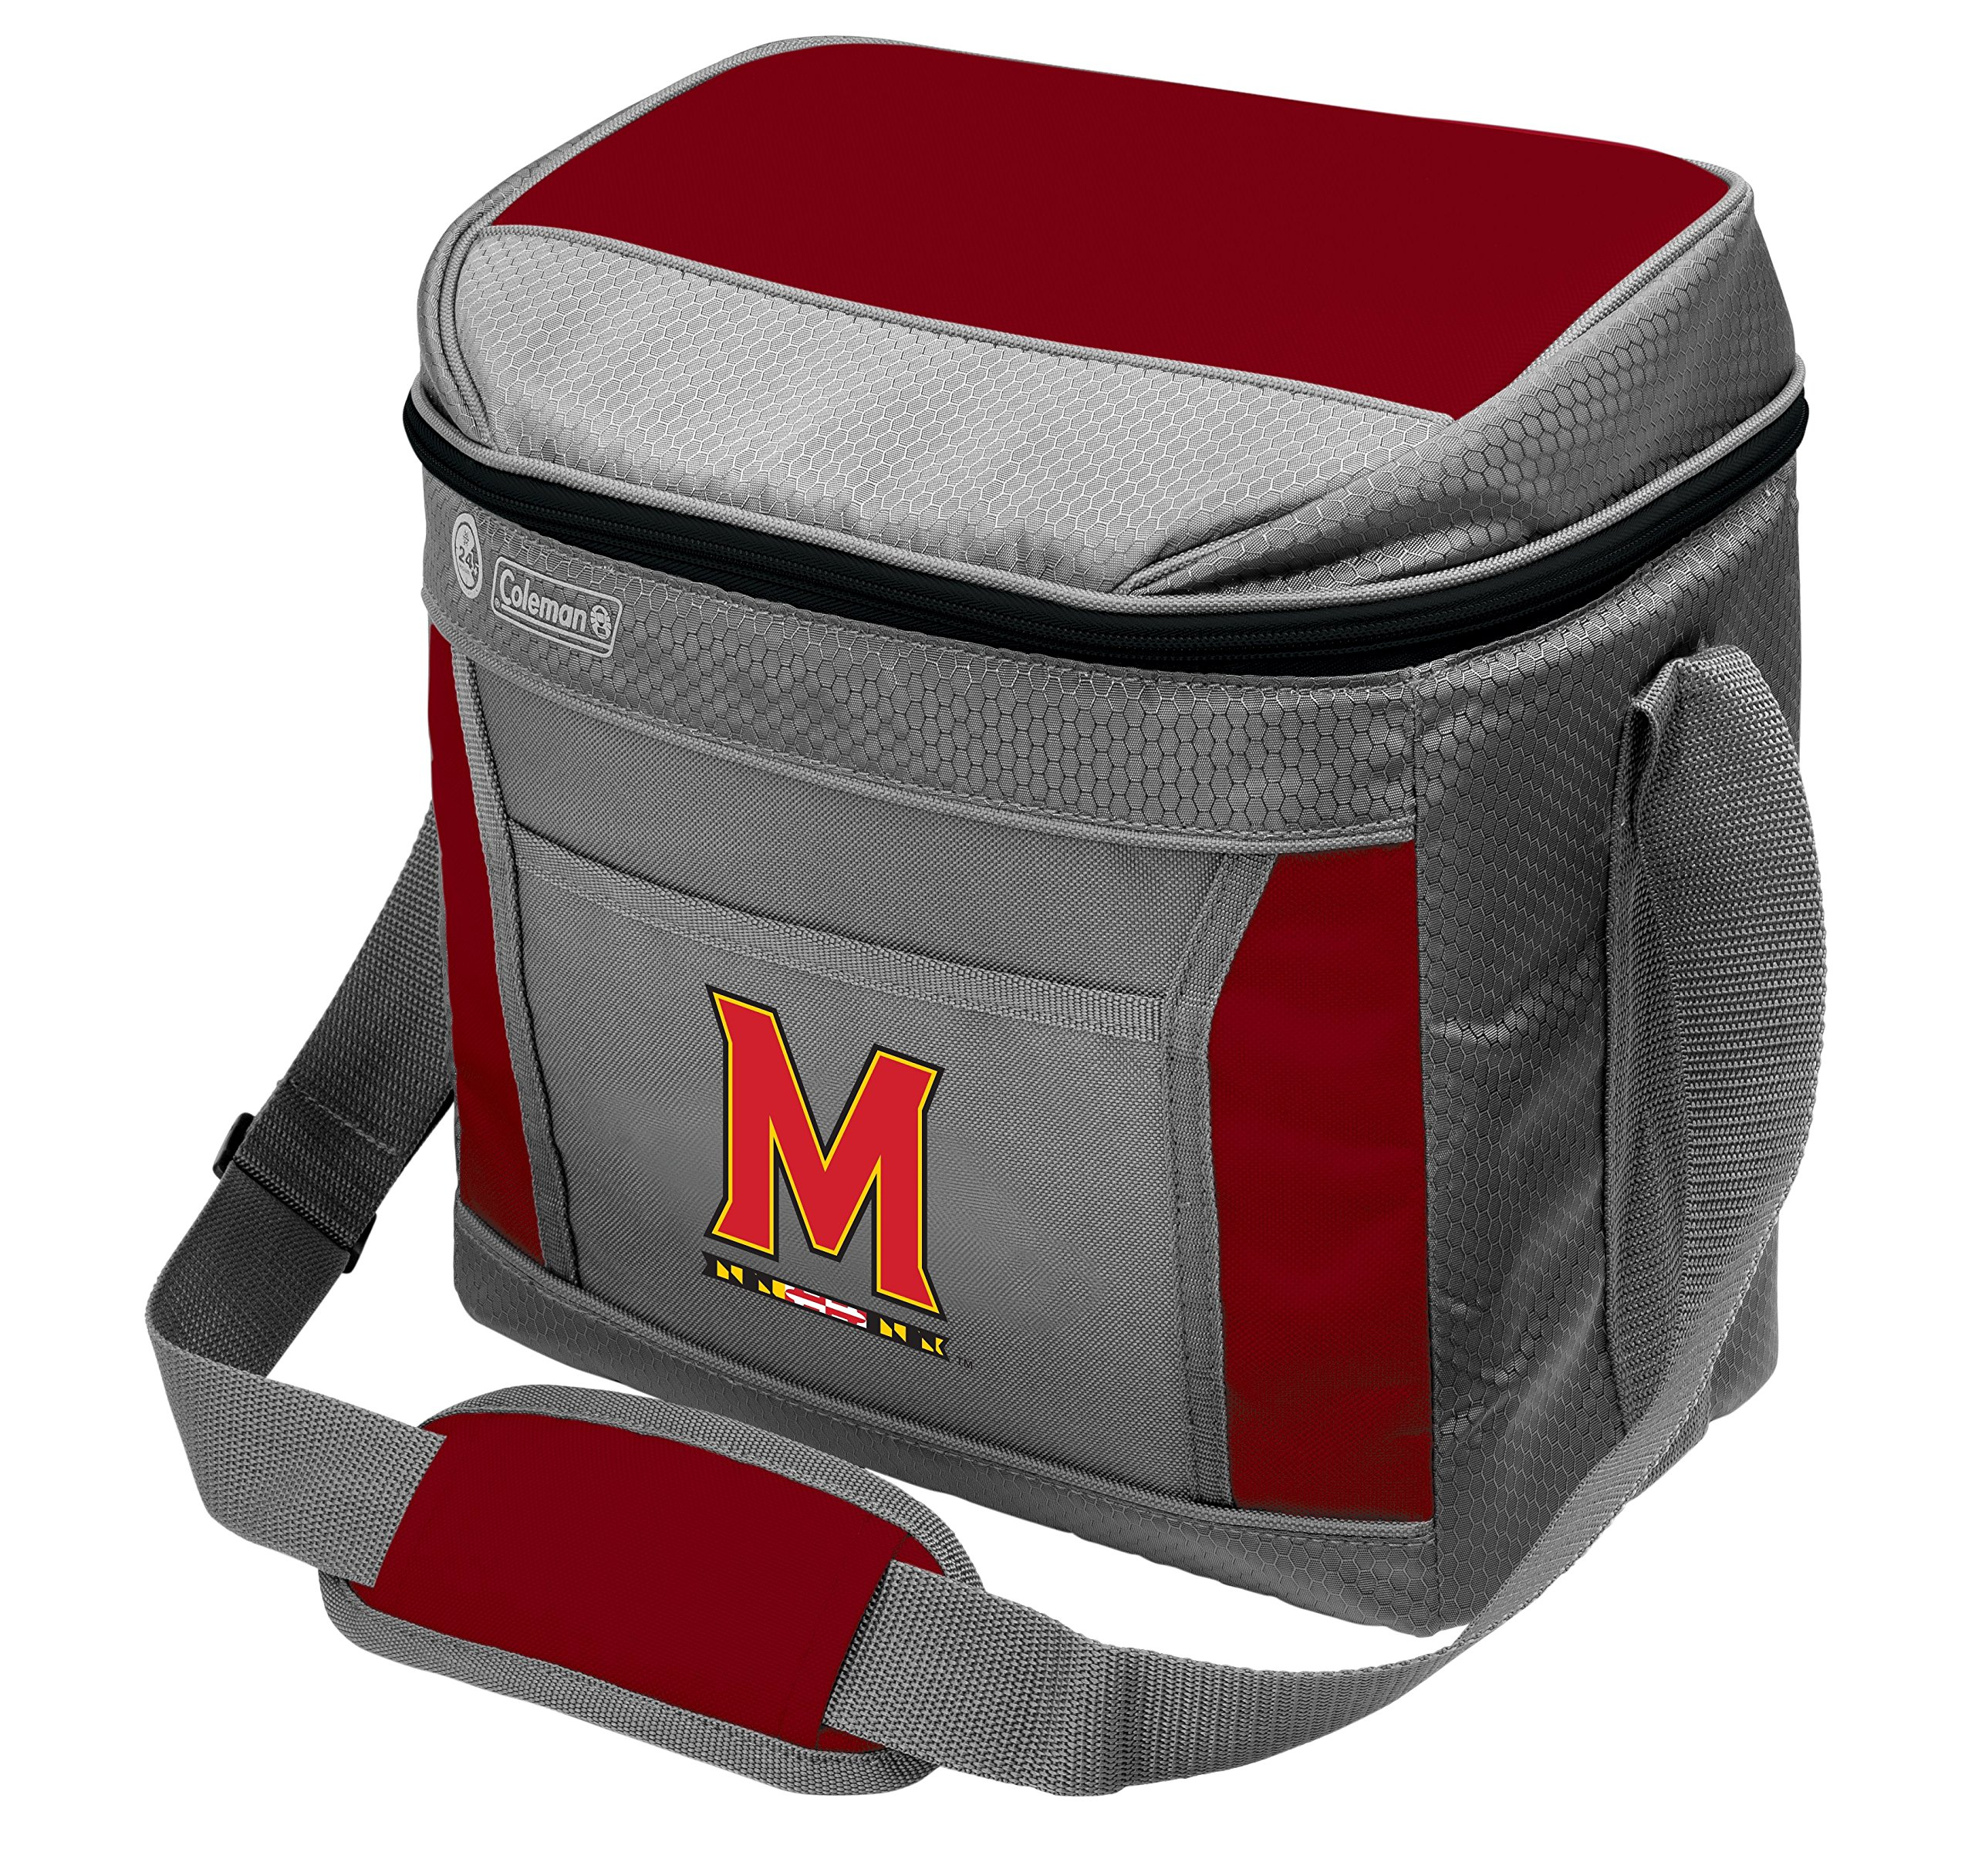 Coleman NCAA Soft-Sided Insulated Cooler Bag, 16-Can Capacity, University of Maryland